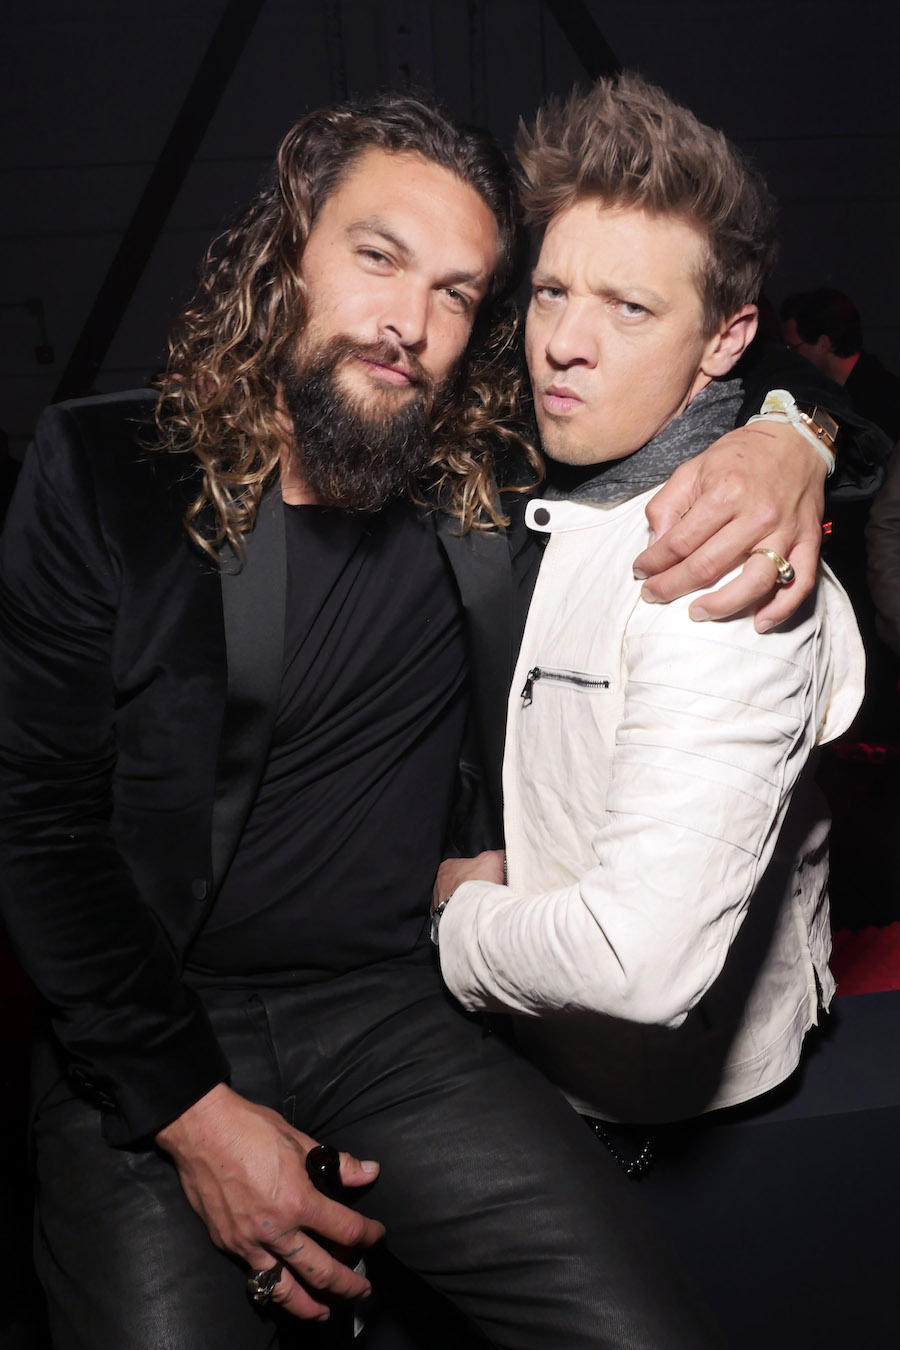 Jason Momoa and Jeremy Renner